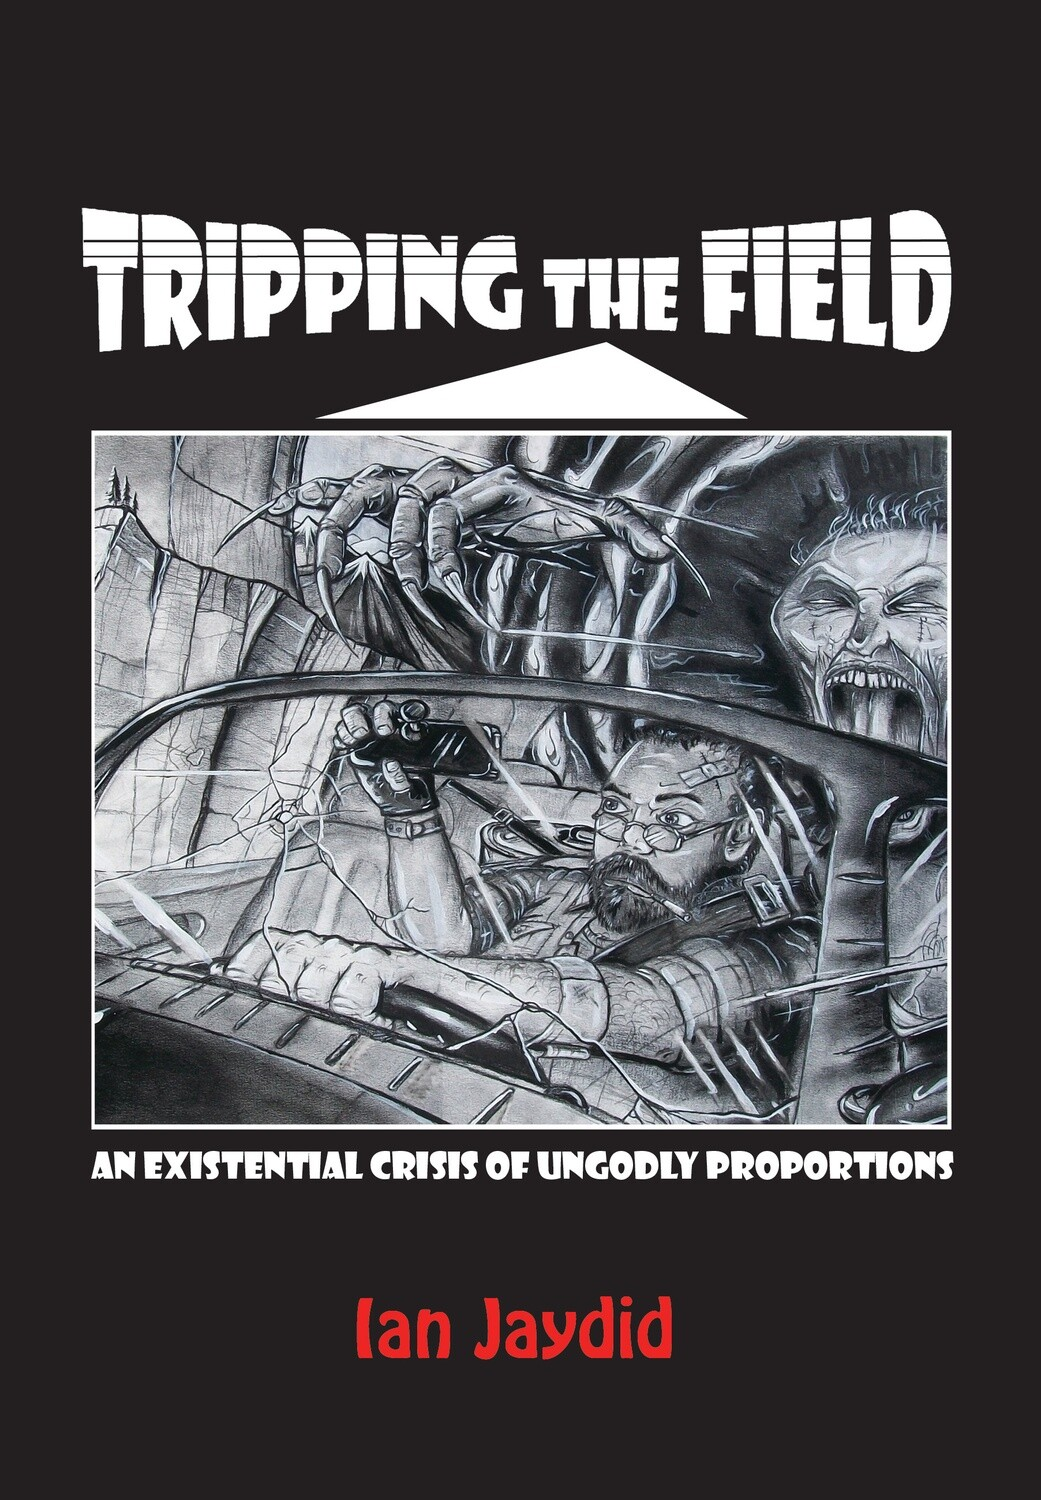 Tripping the Field: An Existential Crisis of Ungodly Proportions -Author signed copy